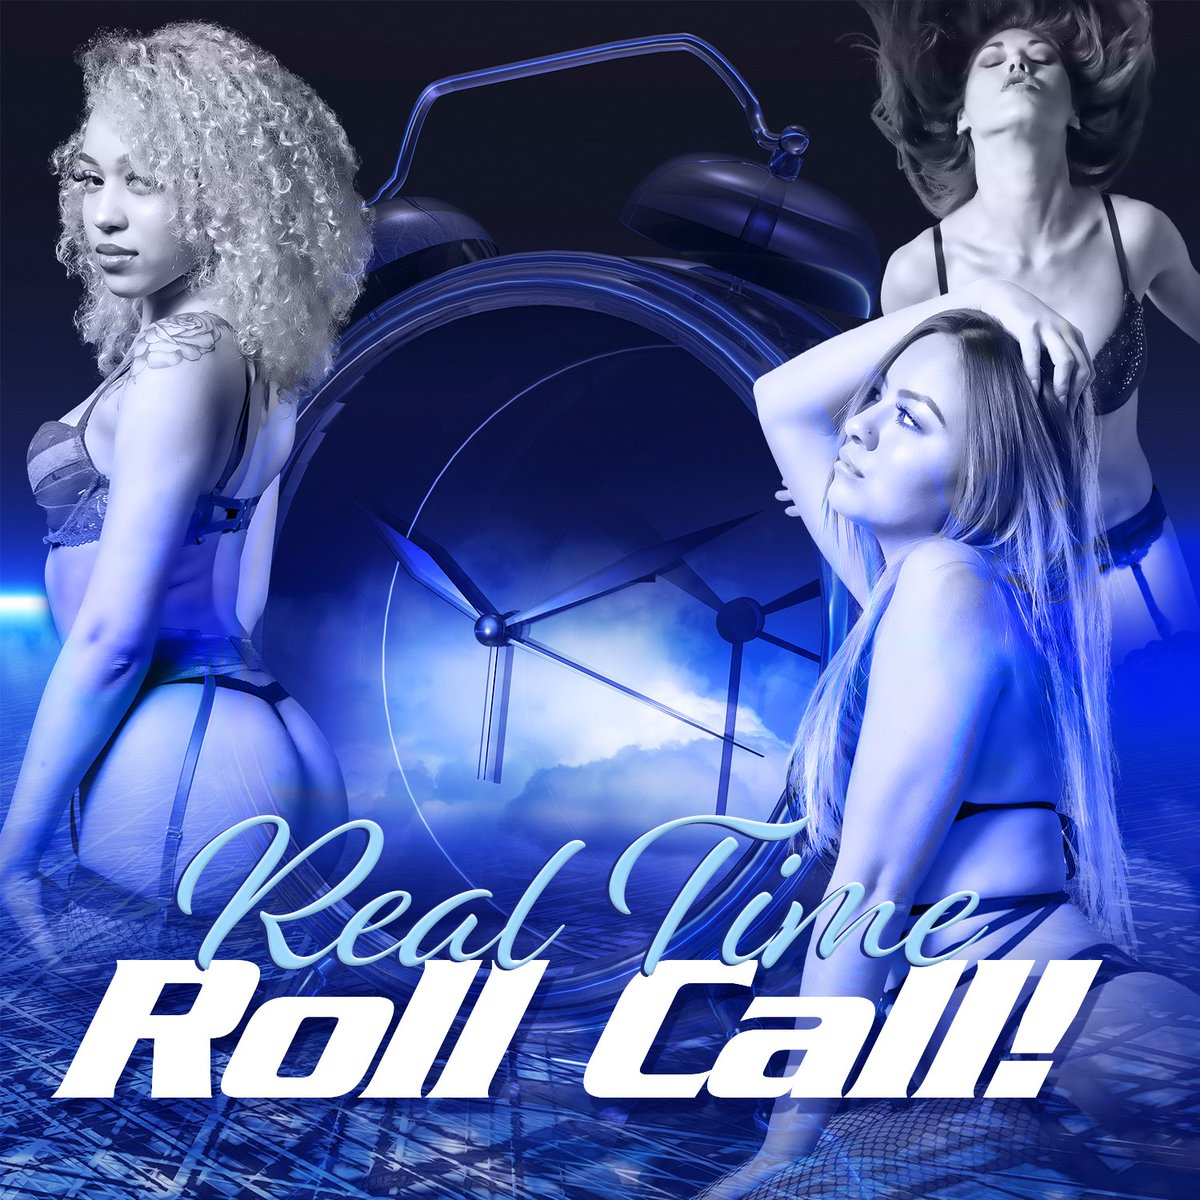 Come out have some Monday fun with ASPEN, VIOLET, TRINITY, RILEY, AMIRA & ELVIRA!  . . . #Rollcall #MondayFunday #MilitaryMonday #sexy #fun #thingstodo #TheMousesEar #knoxville #stripjoint